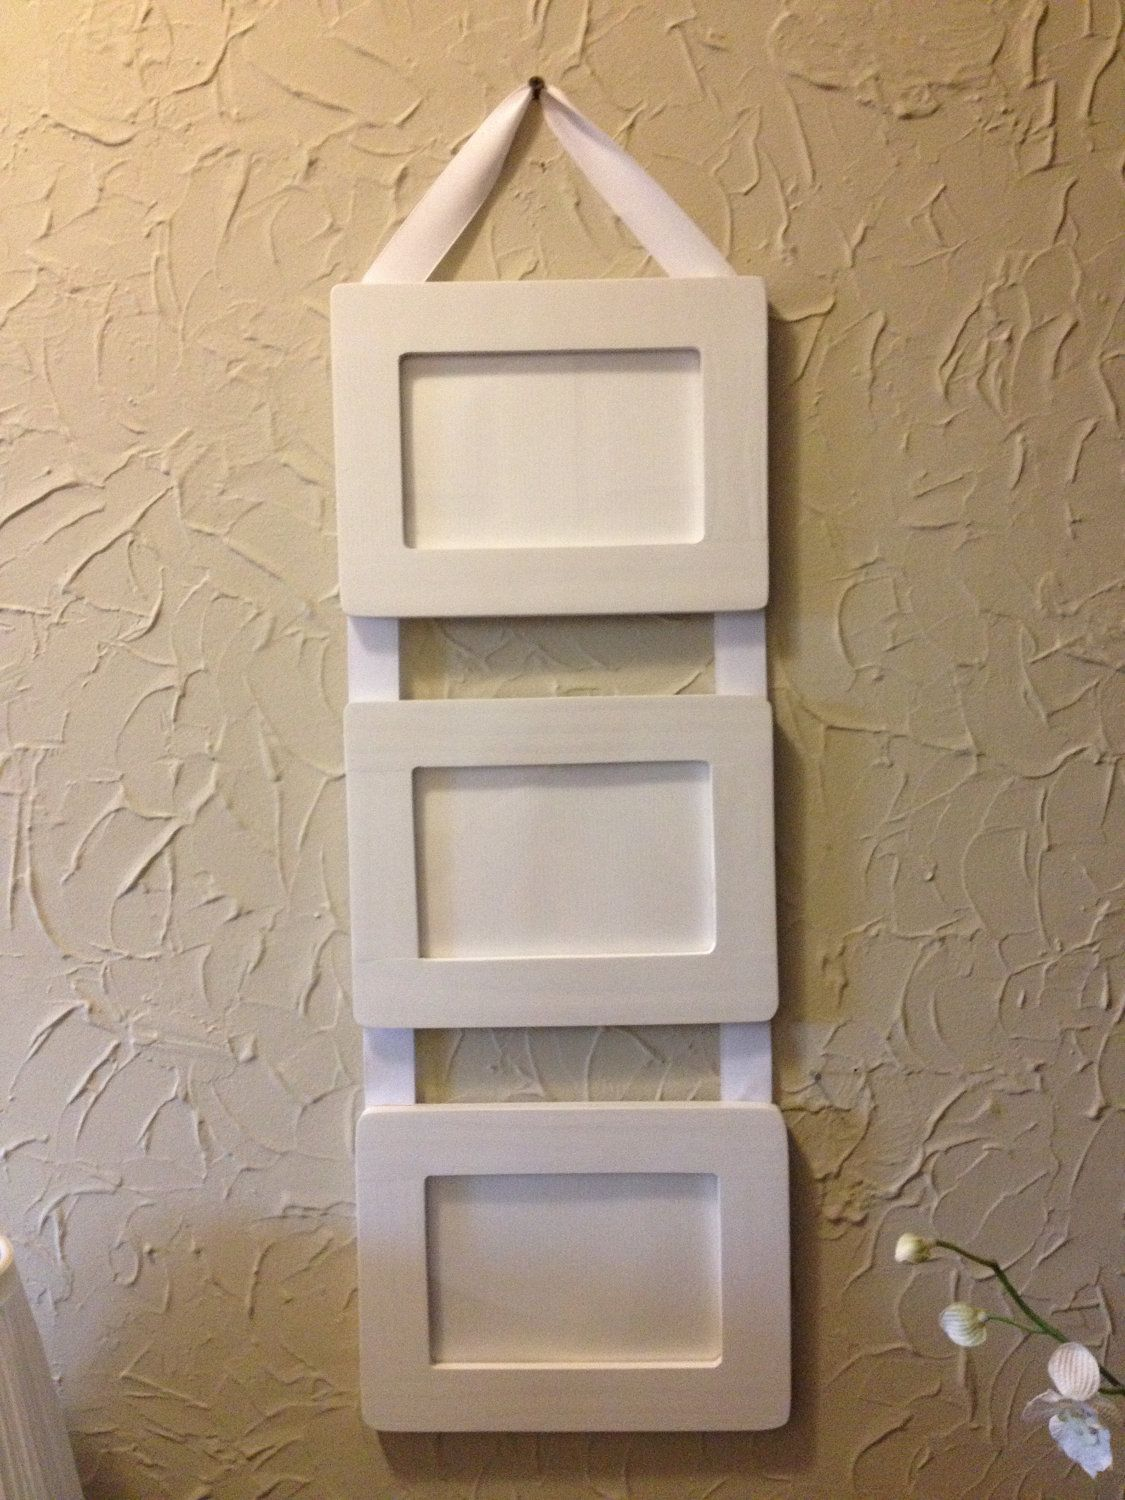 Ribbon hanging picture frames set of 3 4x6 white frames ribbon hanging picture frames set of 3 4x6 white frames connected with grosgrain ribbon jeuxipadfo Gallery